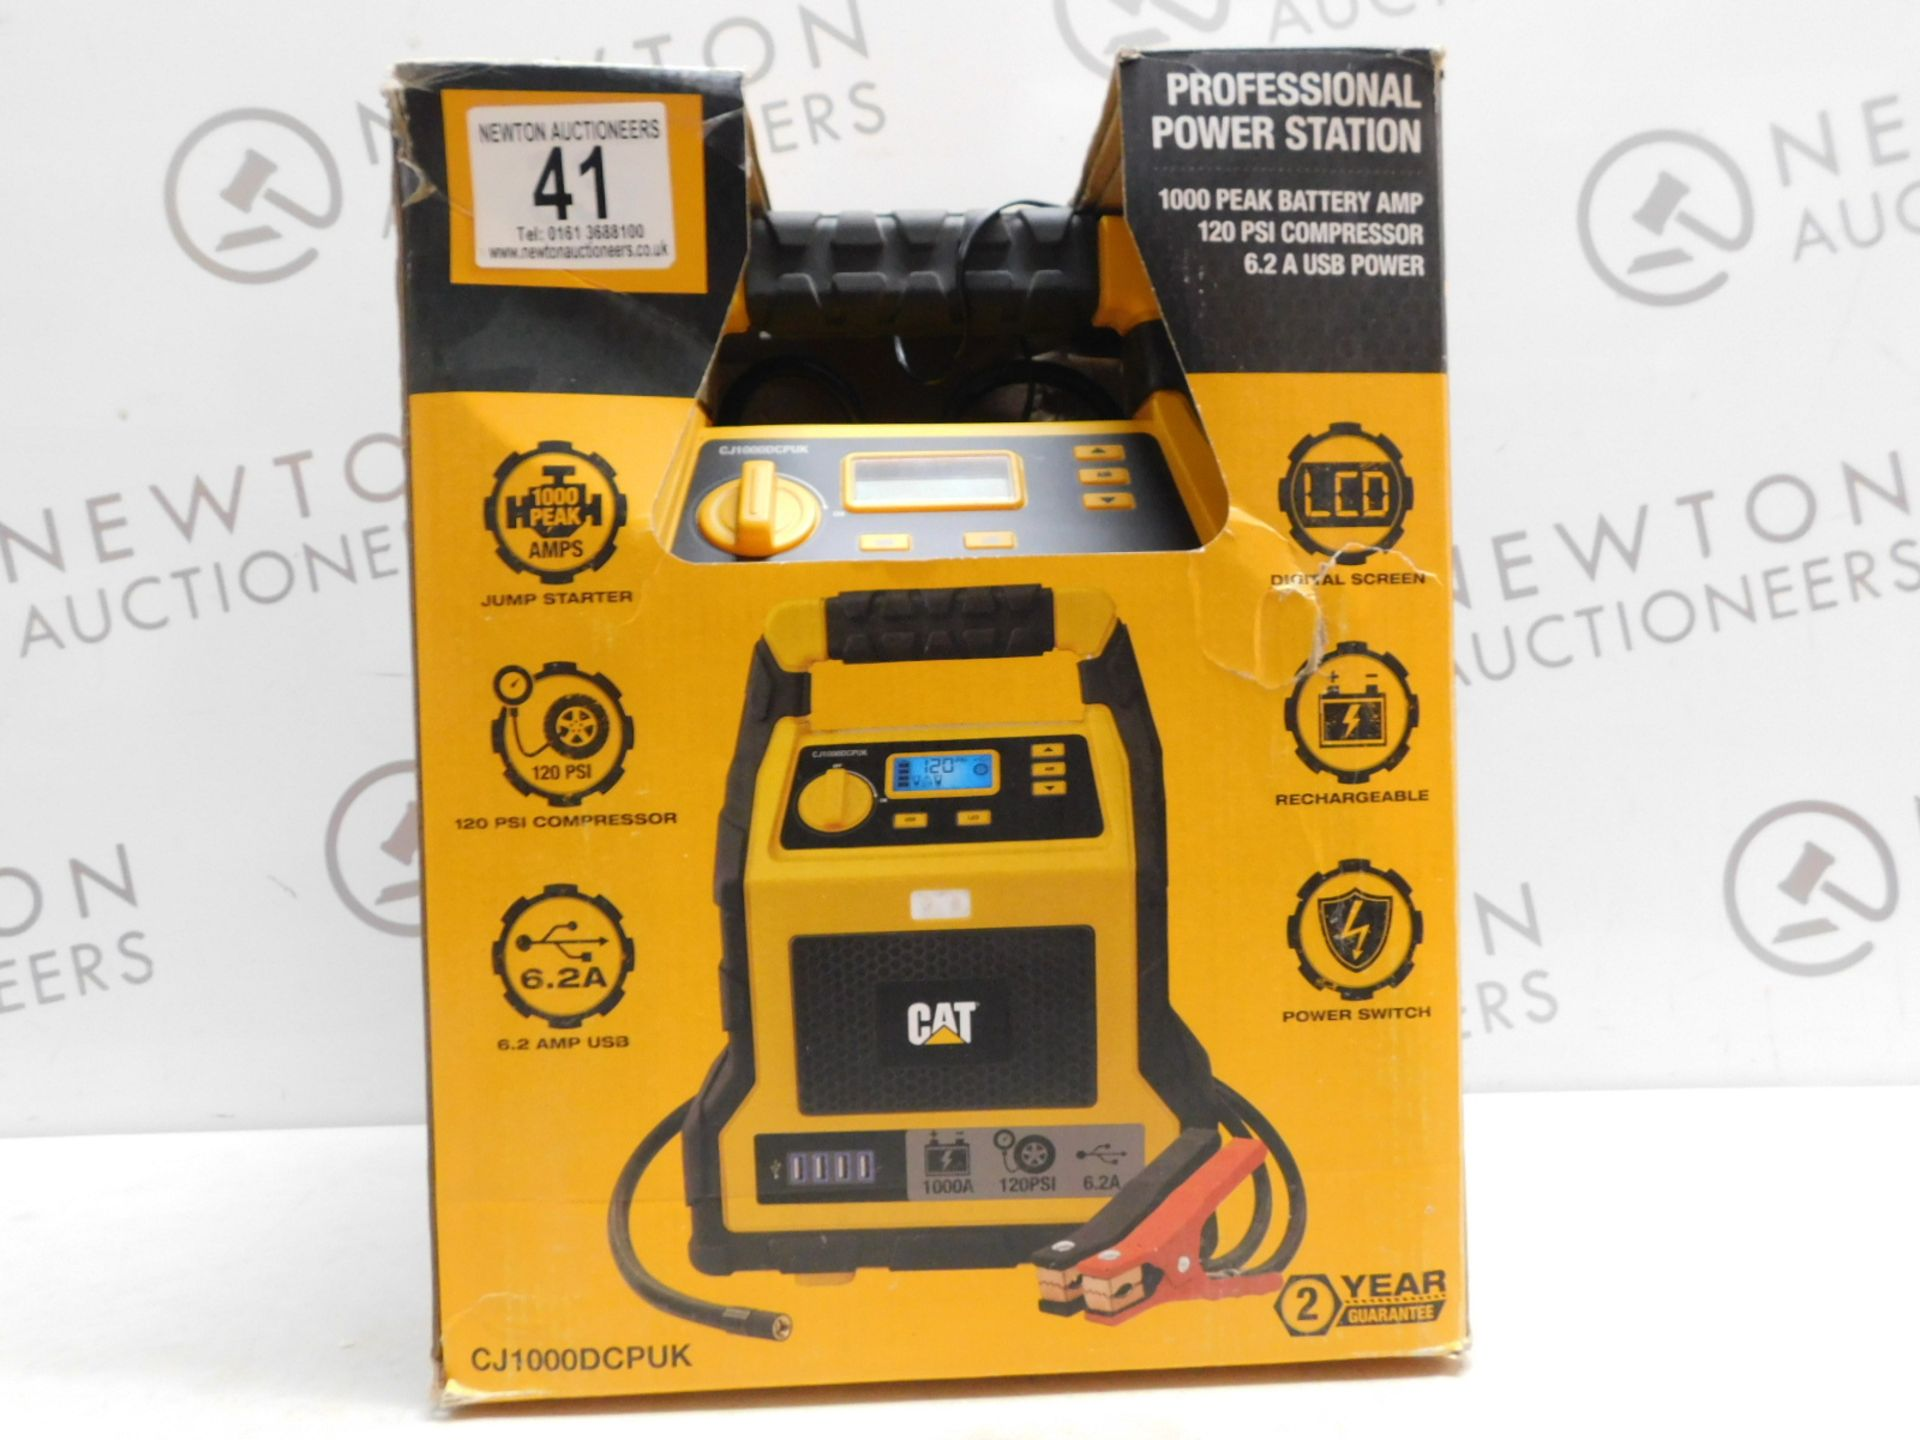 Lot 41 - 1 BOXED CAT 3-IN-1 PROFESSIONAL POWERSTATION WITH JUMP STARTER, USB & COMPRESSOR RRP £129.99